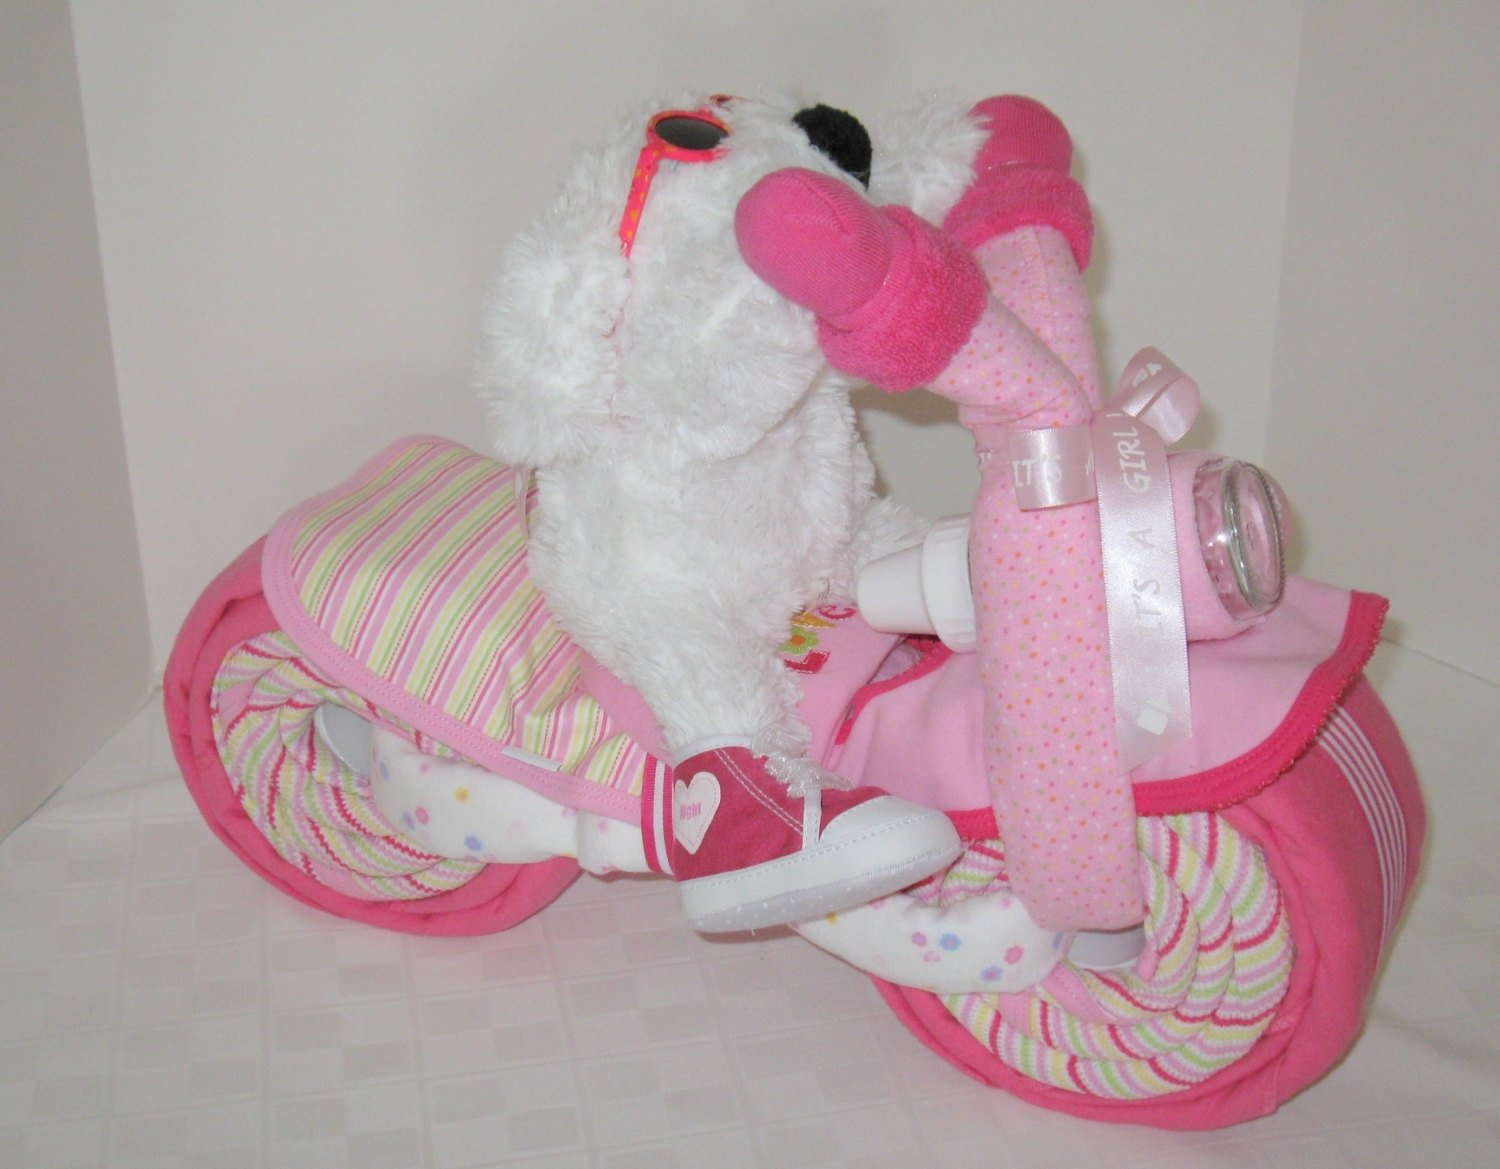 10 Fabulous Ideas For Baby Shower Gifts baby showers gift ideas omega center ideas for baby 4